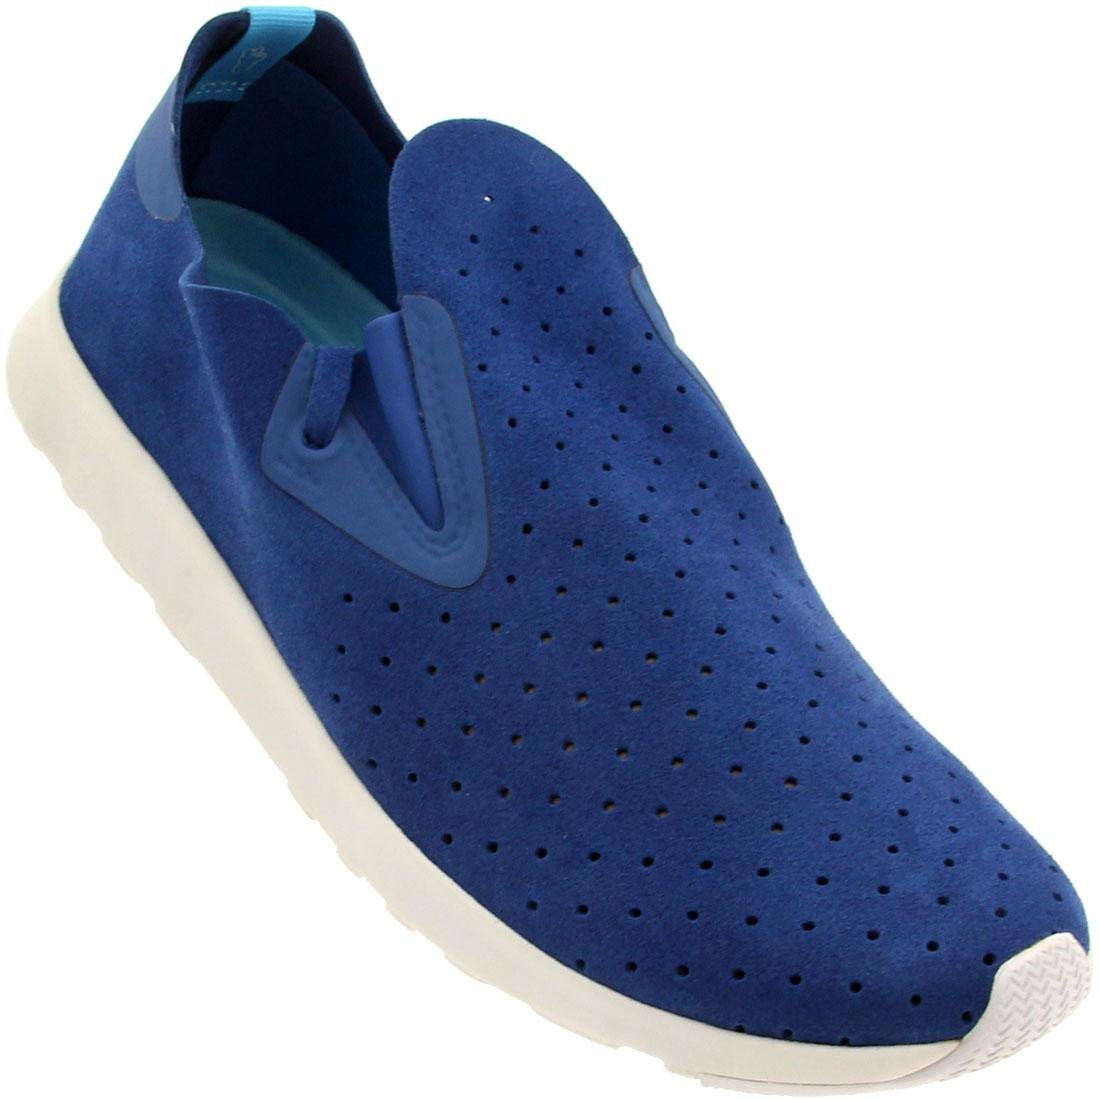 Native Unisex Apollo Moc Fashion Sneaker. B00L5KLU0I 15 B(M) US Women / 13 D(M) US Men|Victoria Blue/Shell White Rubber